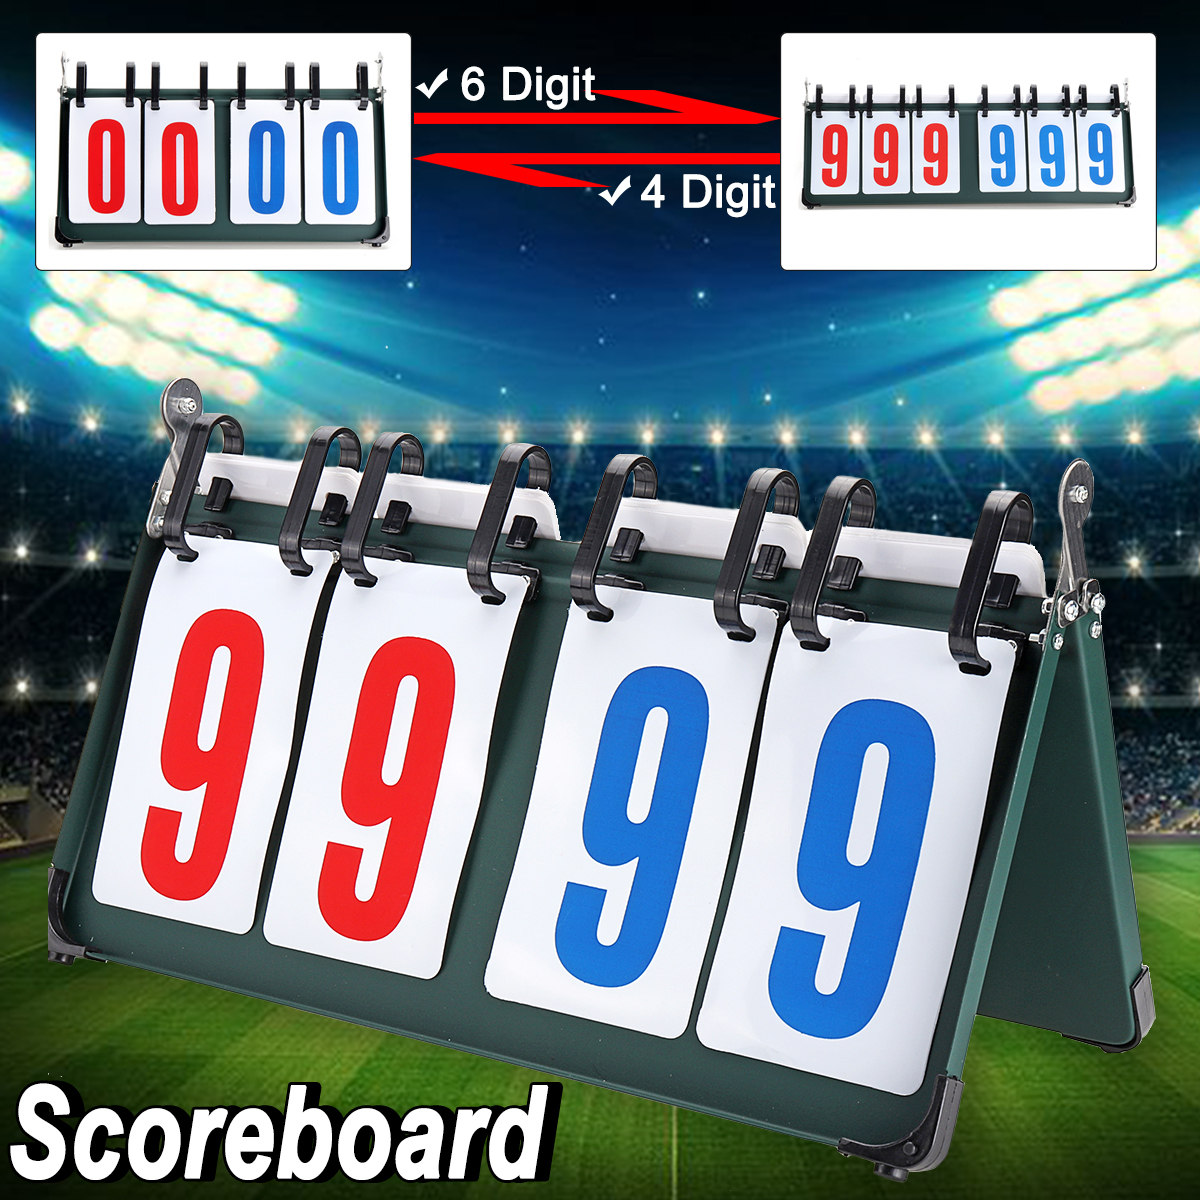 4/6 Digit Scoreboard Separator Portable Sports Match Football Basketball Game Judge Flip Score Board